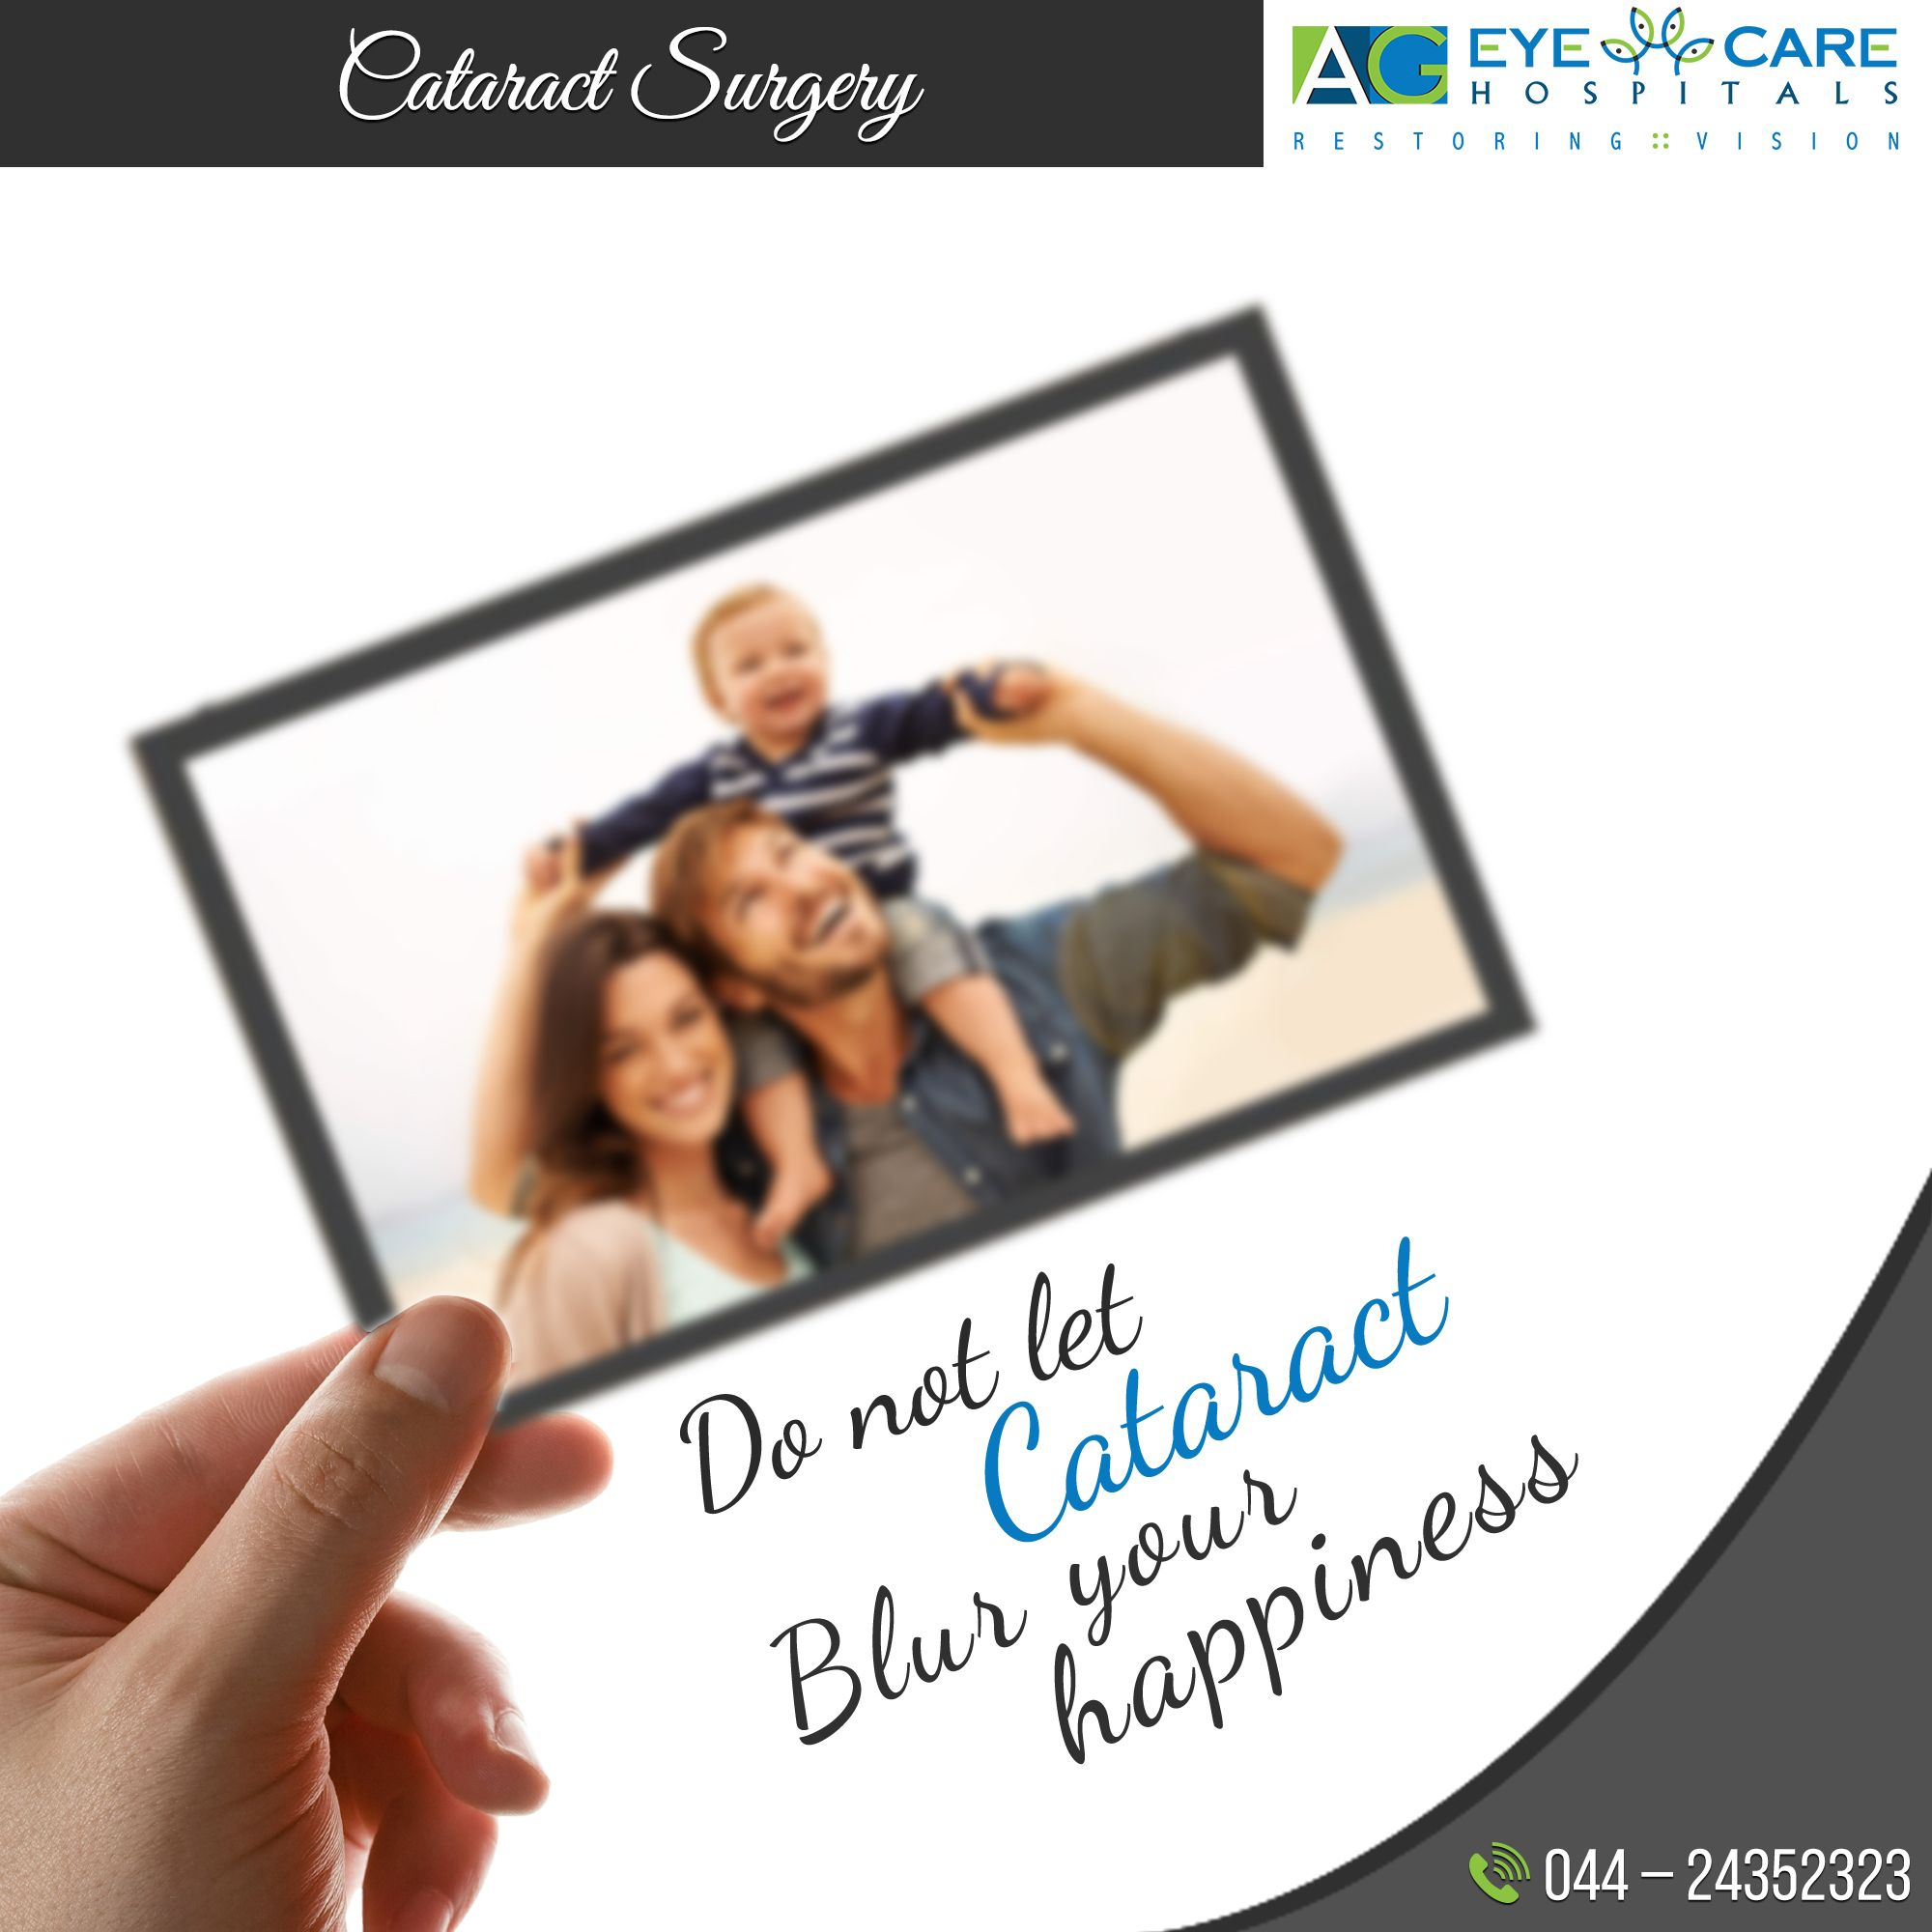 blinds o assistance cataract cause surgery can for blog financial blindness cataracts